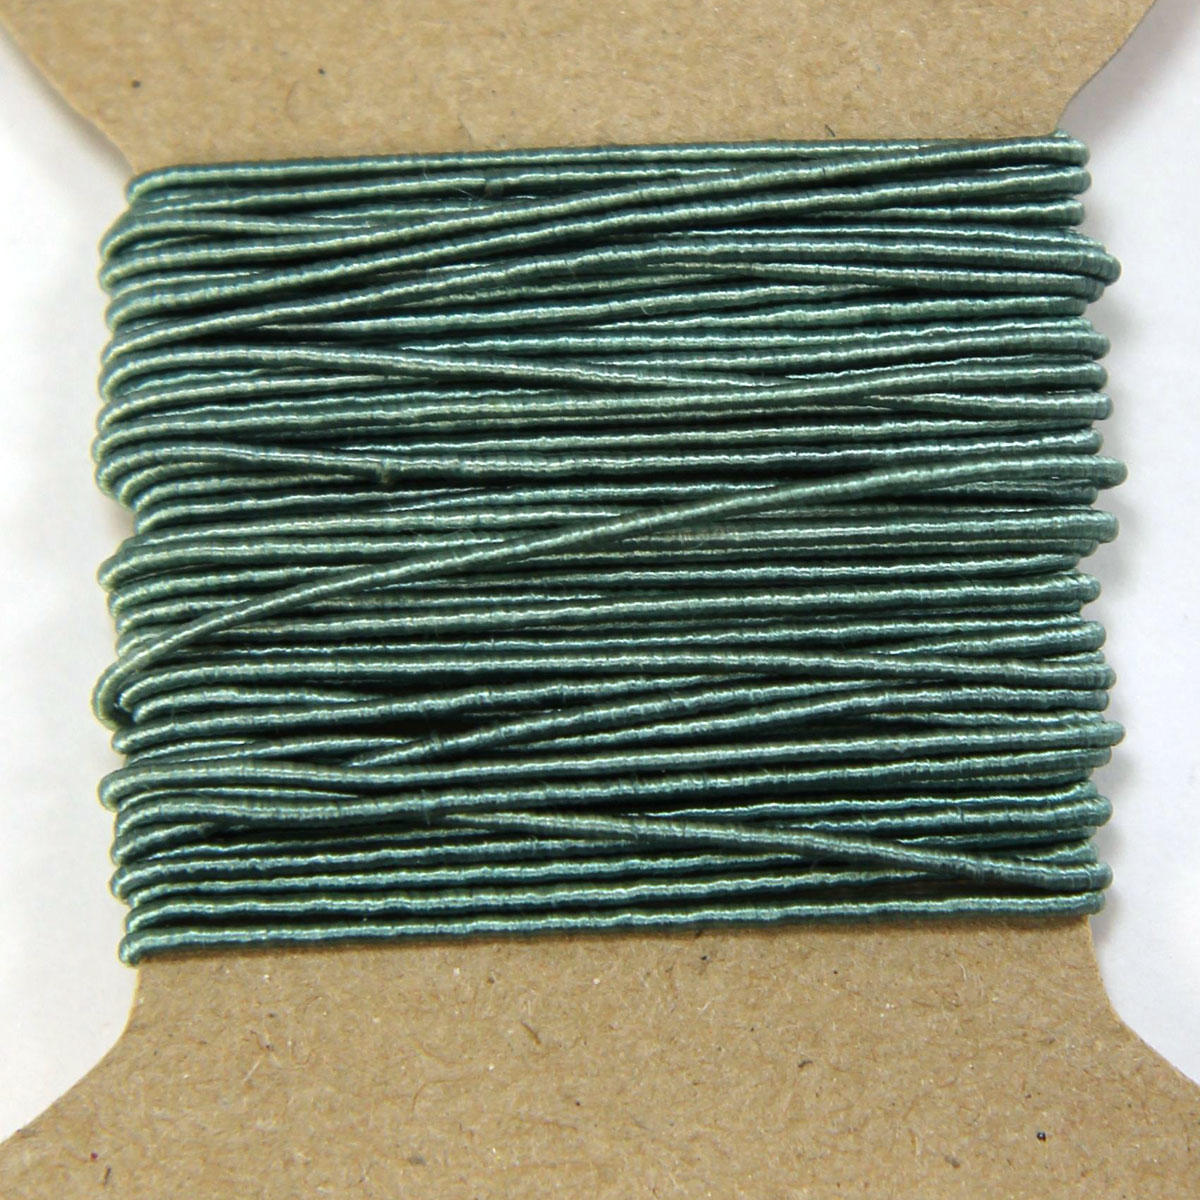 Muted Turquoise Silken Beading Cord